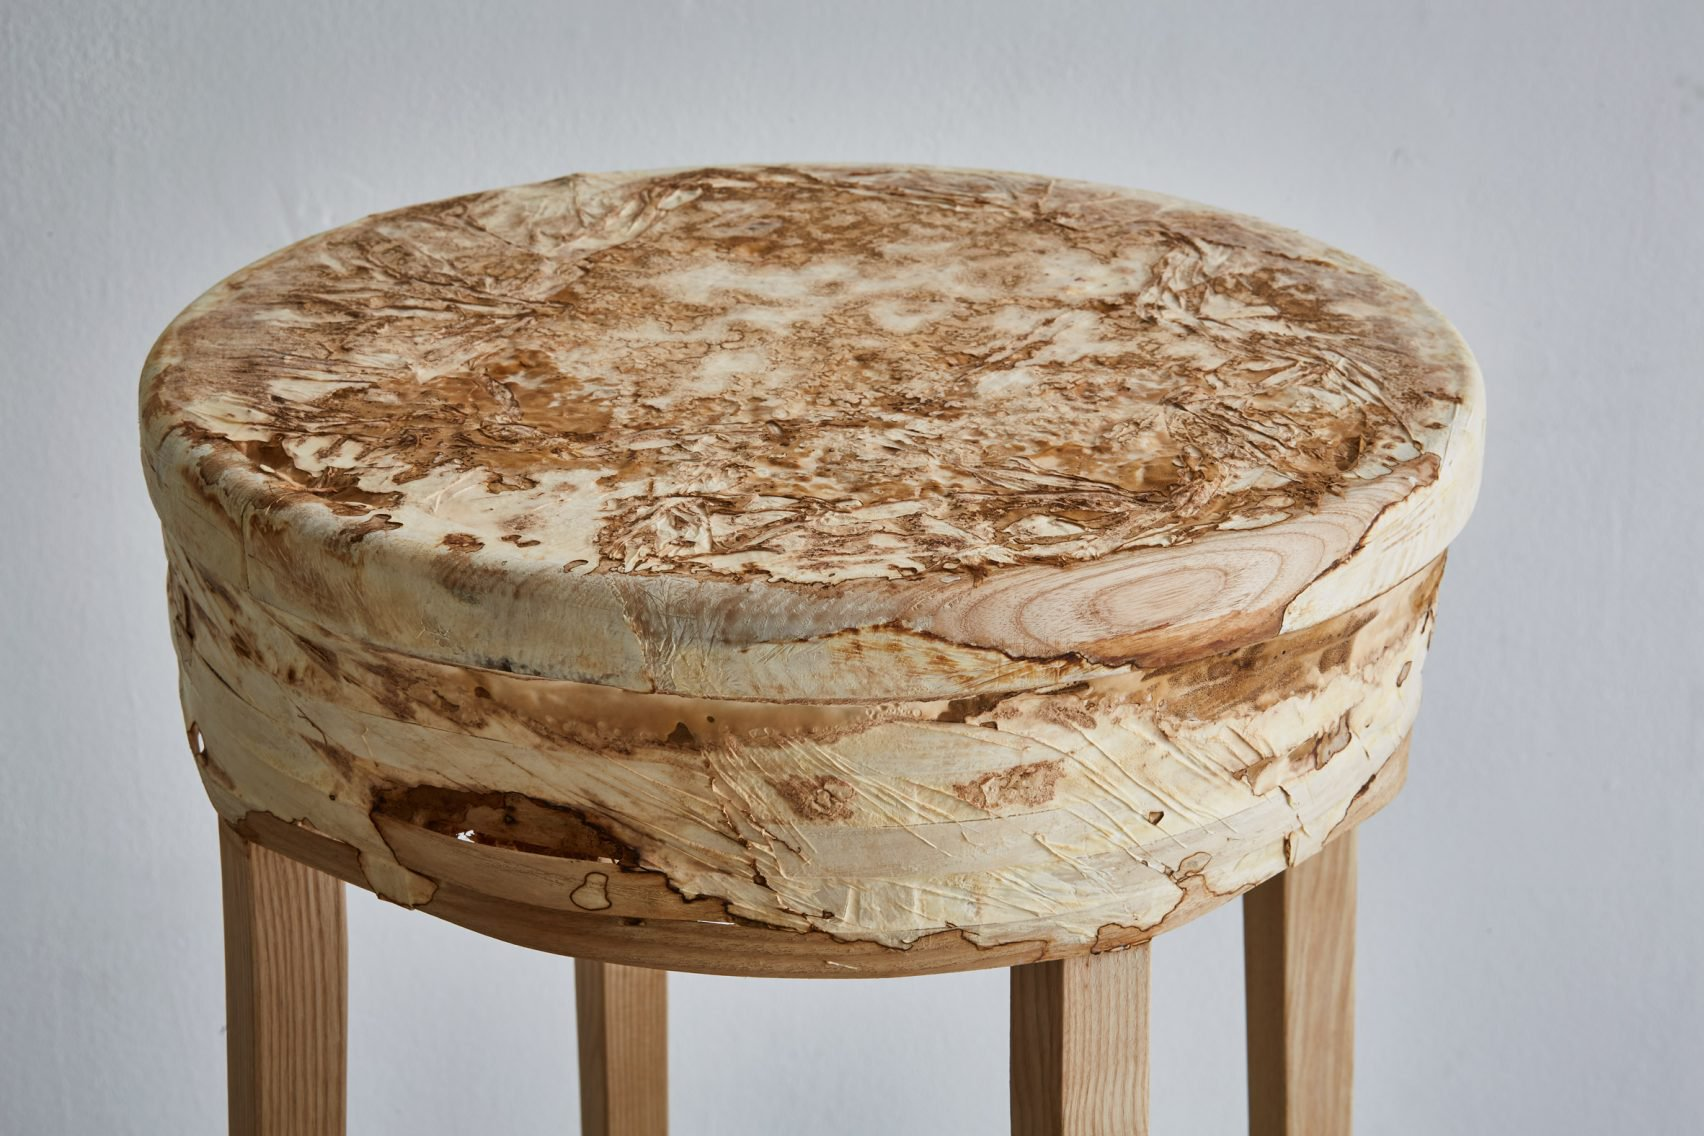 mycelium-timber-london-design-festival_dezeen_2364_col_13-1704x1136.jpg